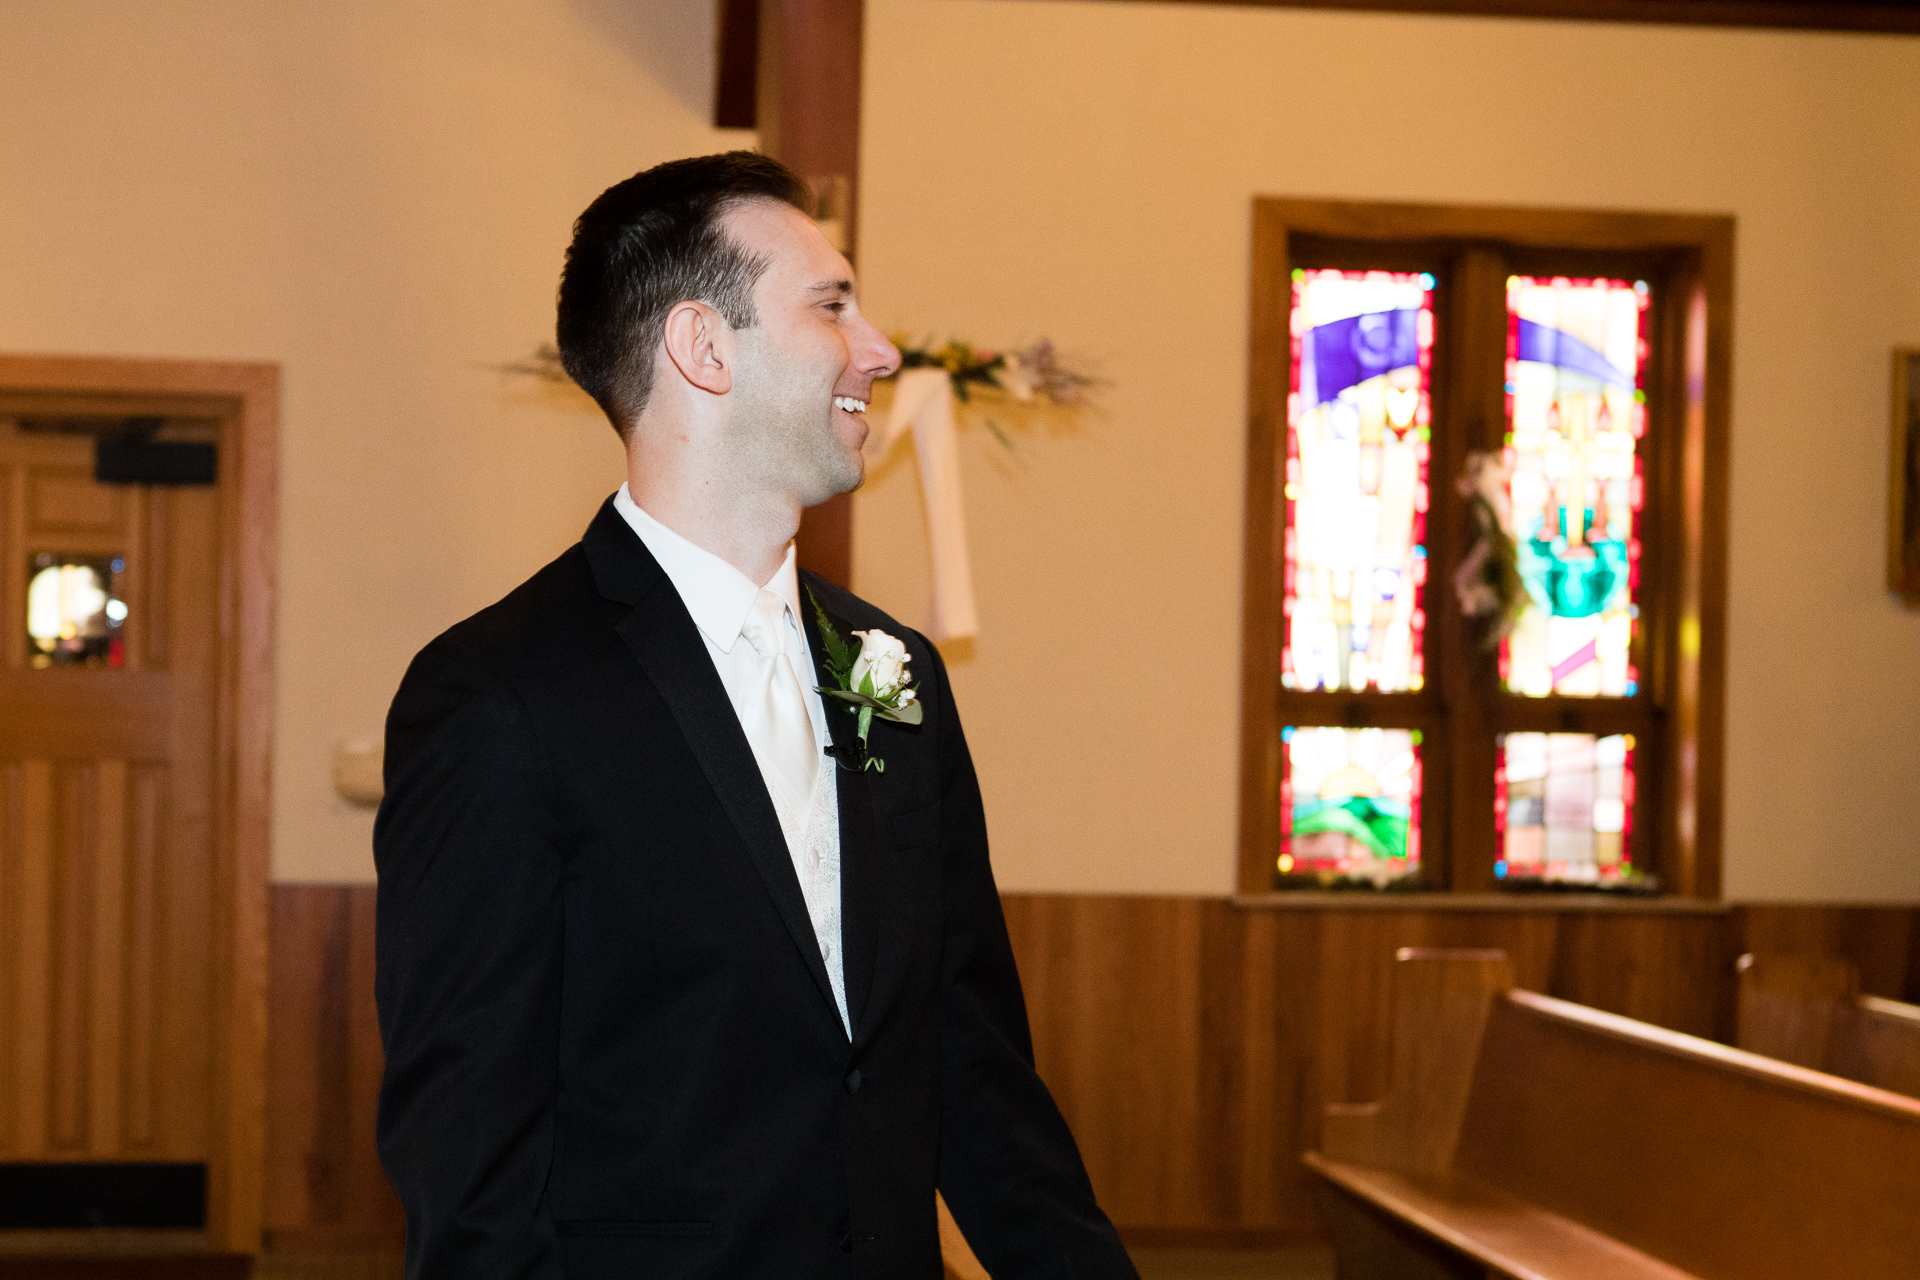 Groom smiling at bride walking down the aisle